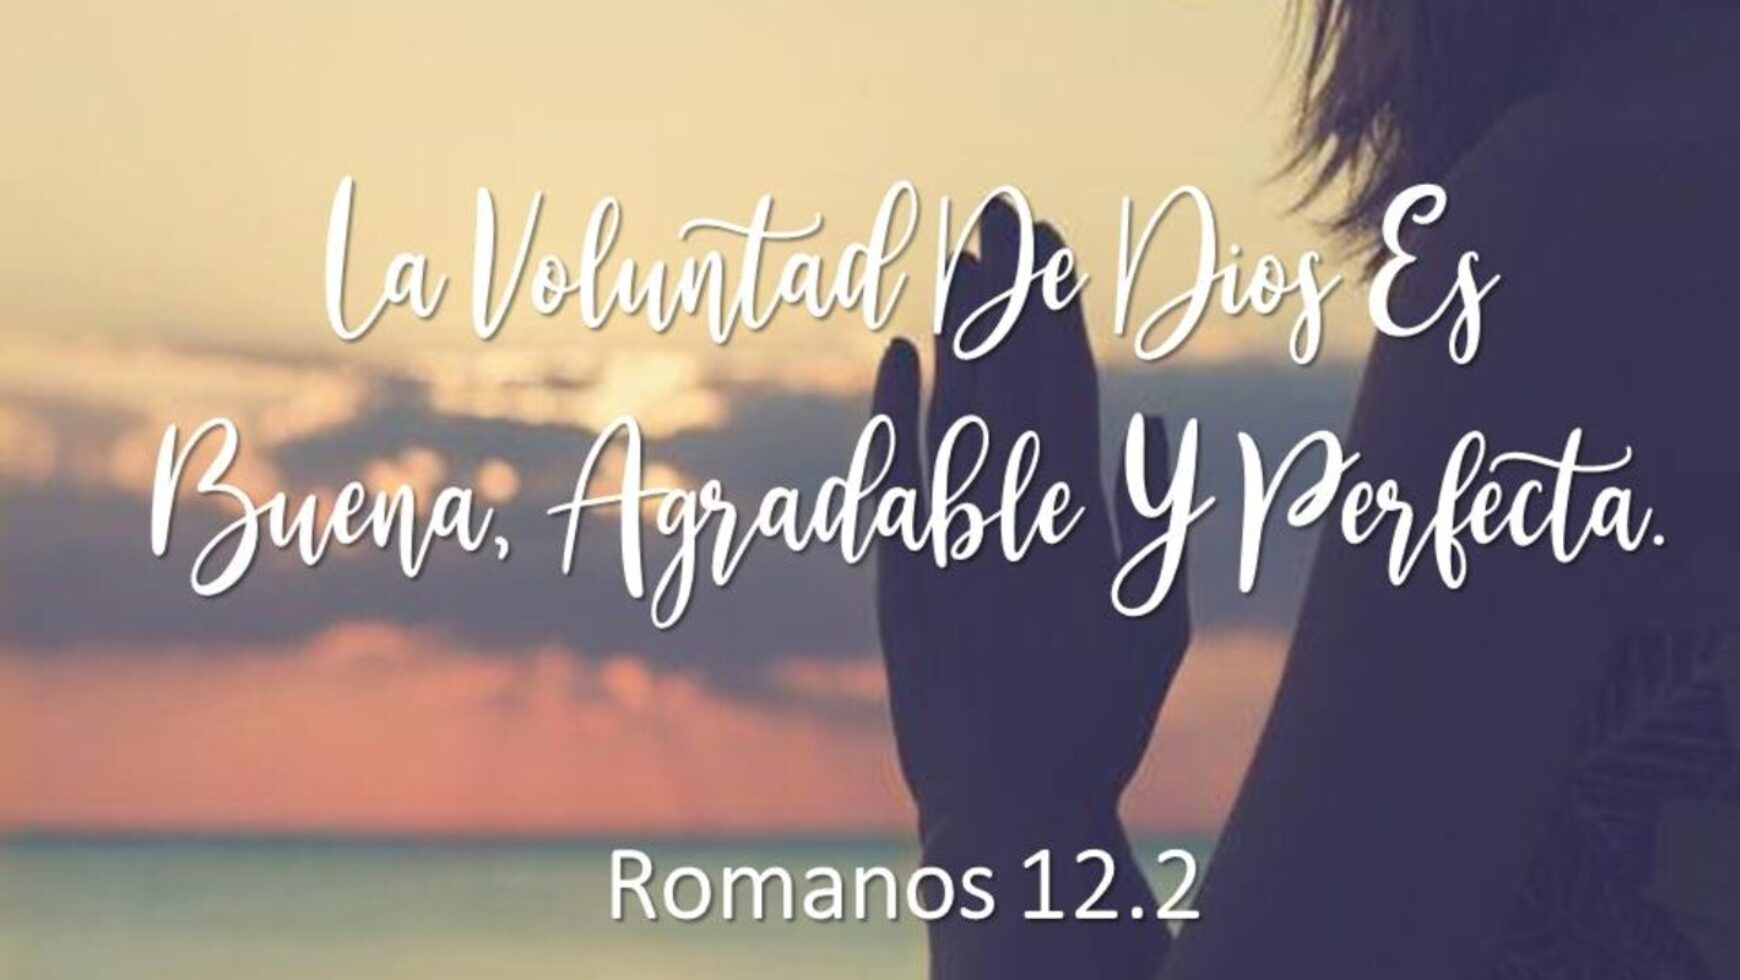 La voluntad de Dios es buena, agradable y perfecta